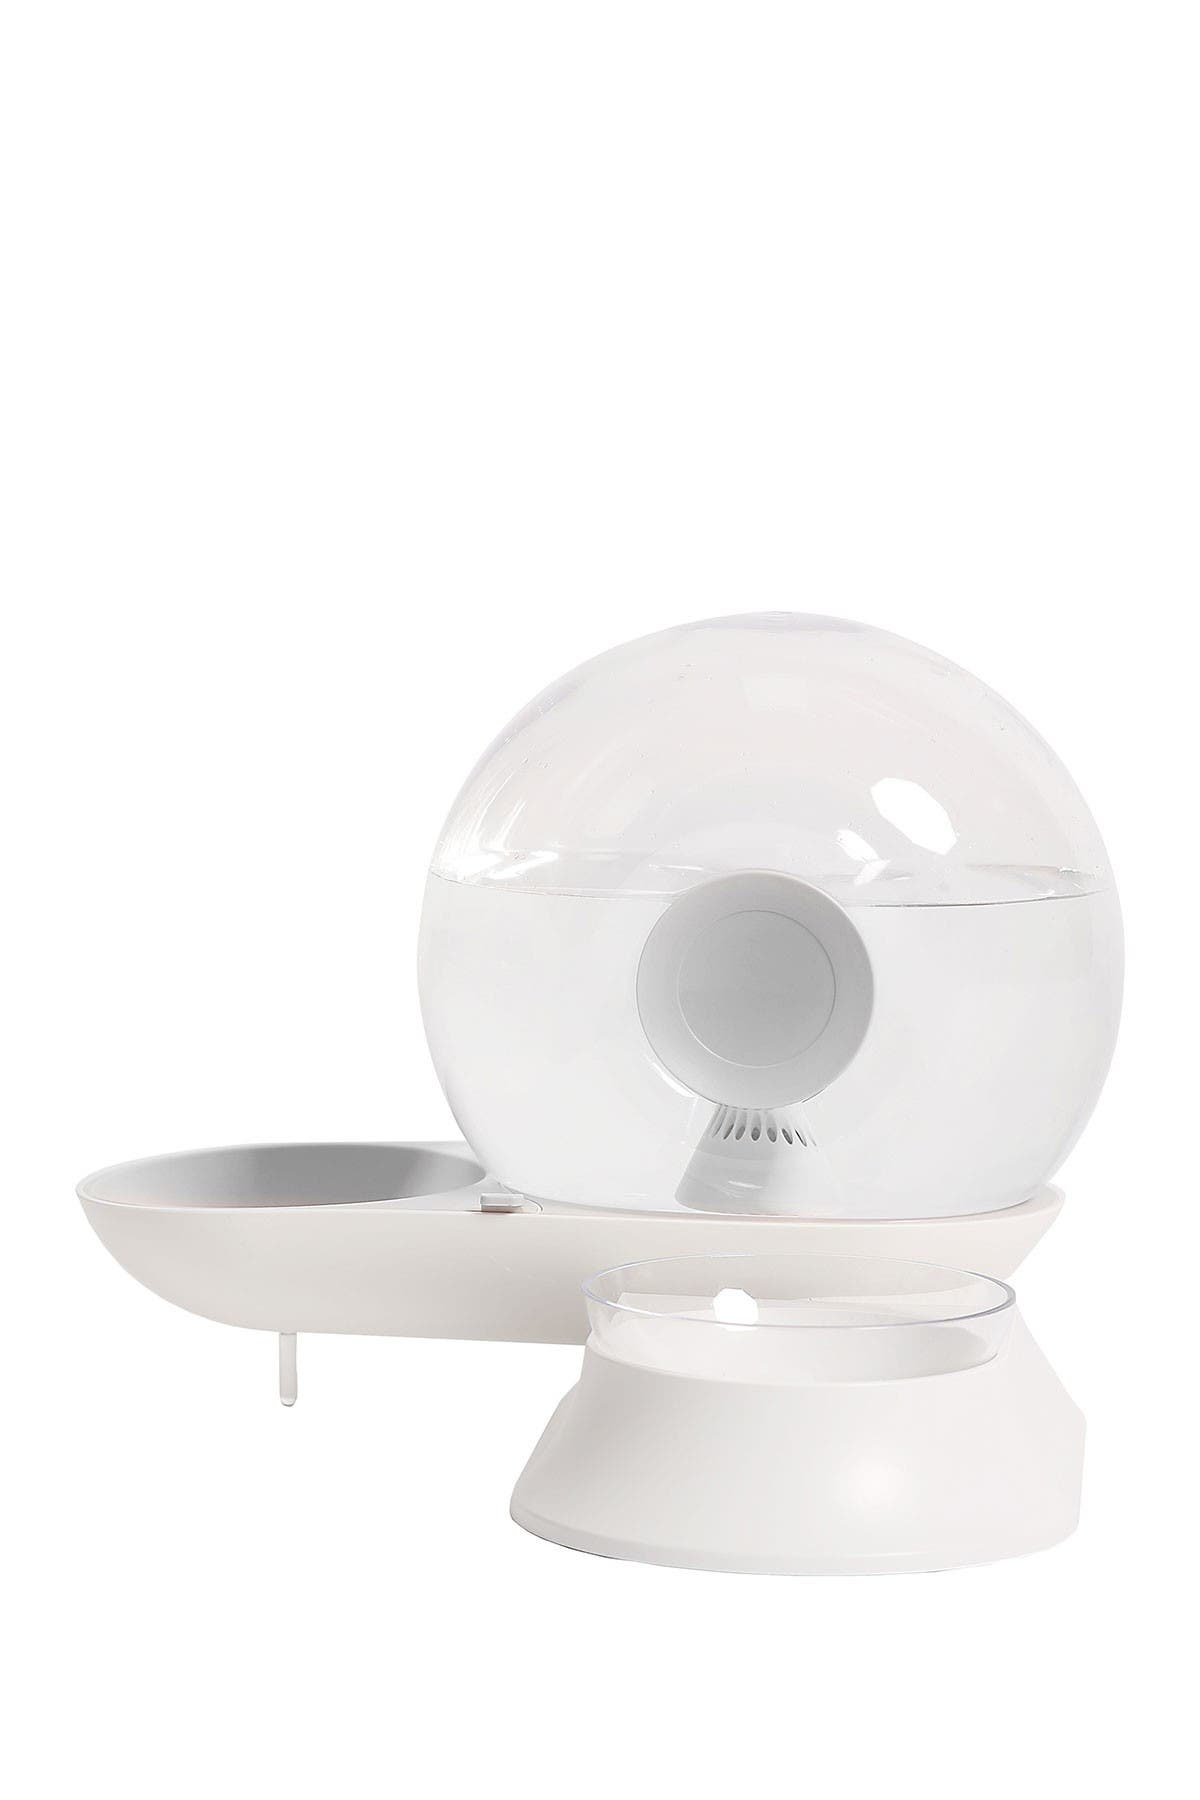 Image of Pet Life 'Auto-Myst' Snail Shaped 2-in-1 Automated Gravity Pet Filtered Water Dispenser & Food Bowl